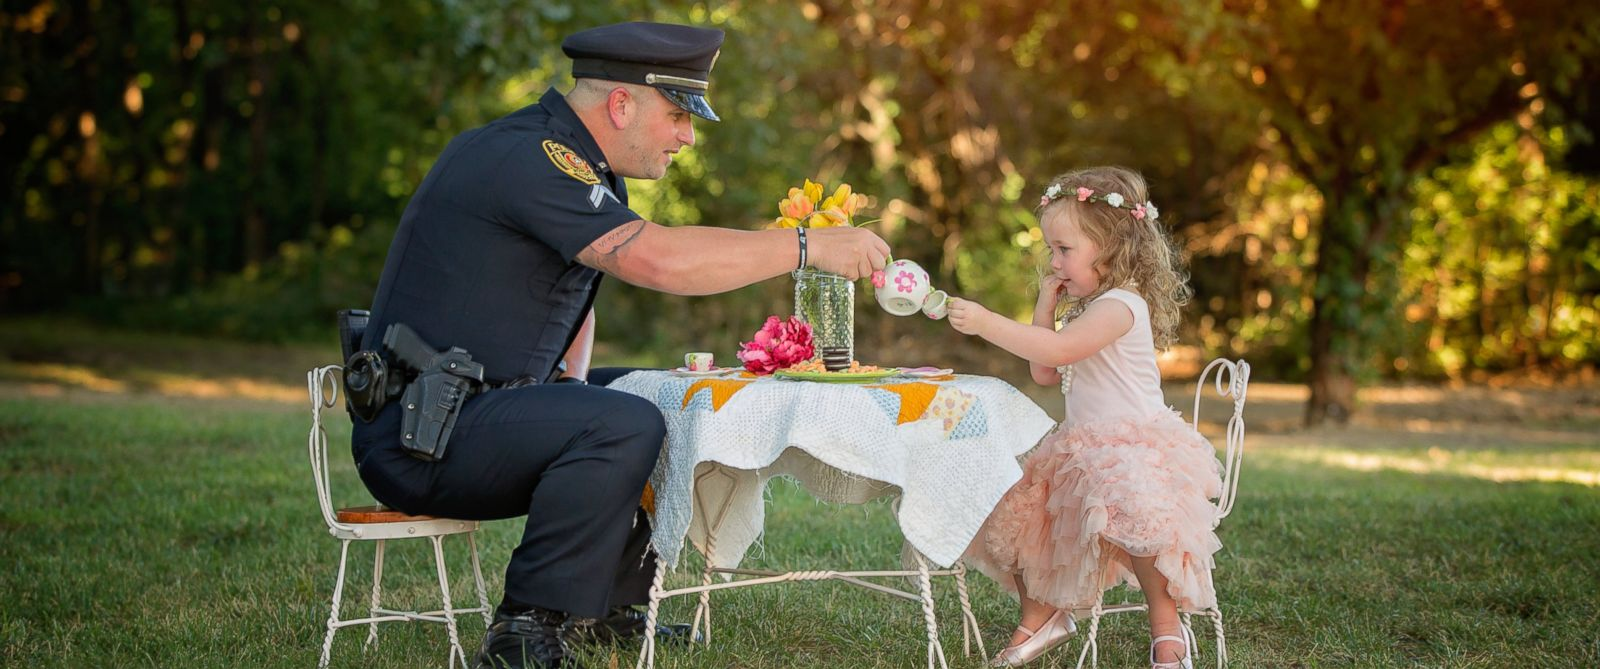 tea-party-for-the-policeman-who-saved-her-life-02